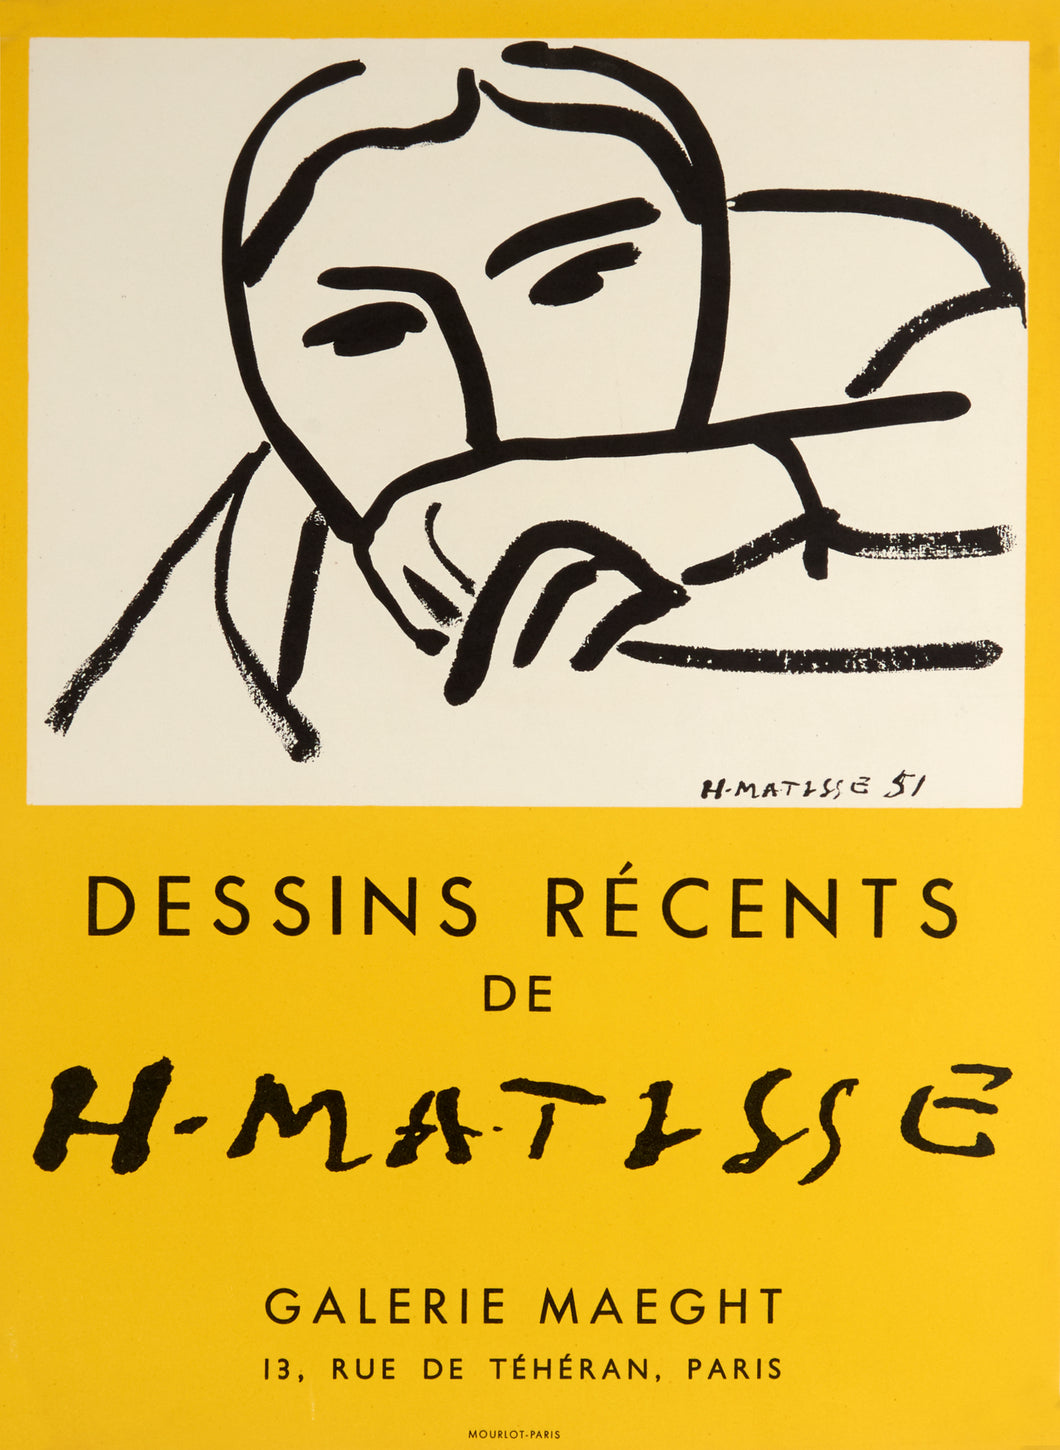 Dessins Récents by Henri Matisse 1952